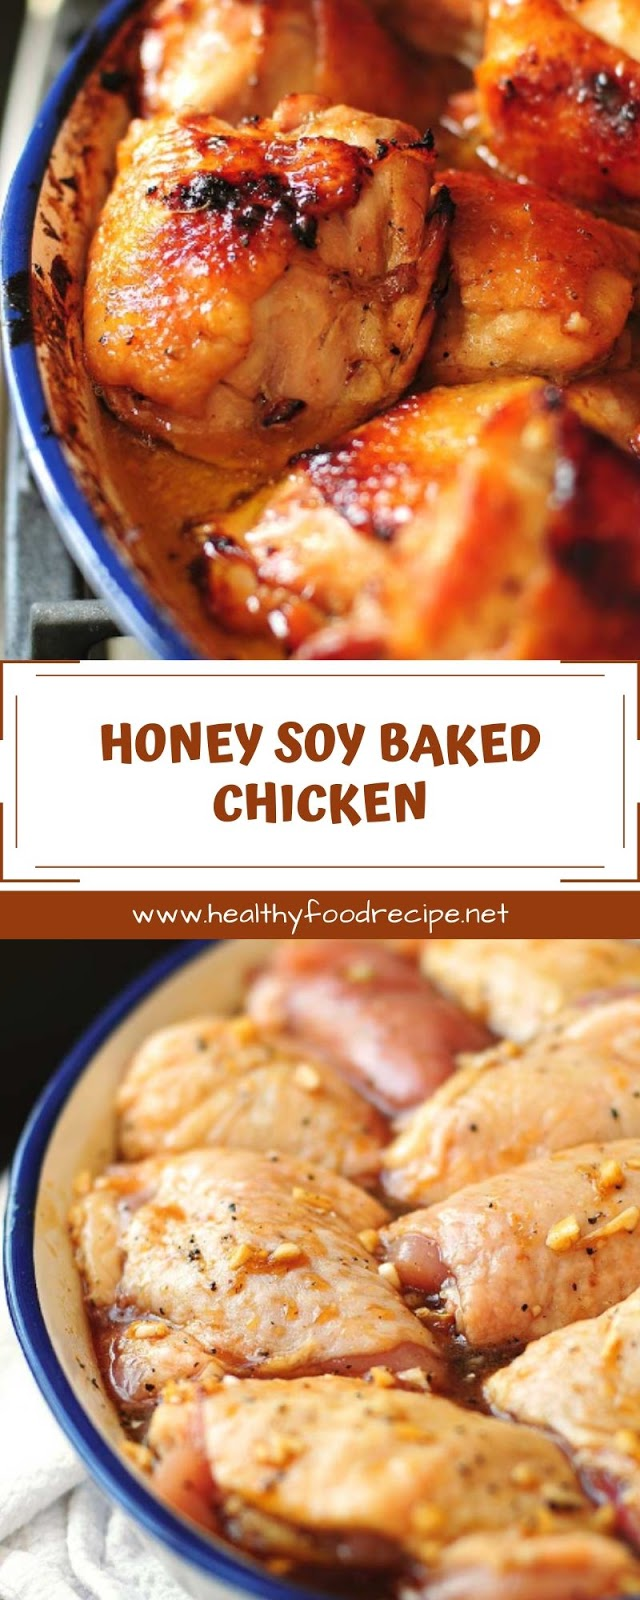 HONEY SOY BAKED CHICKEN